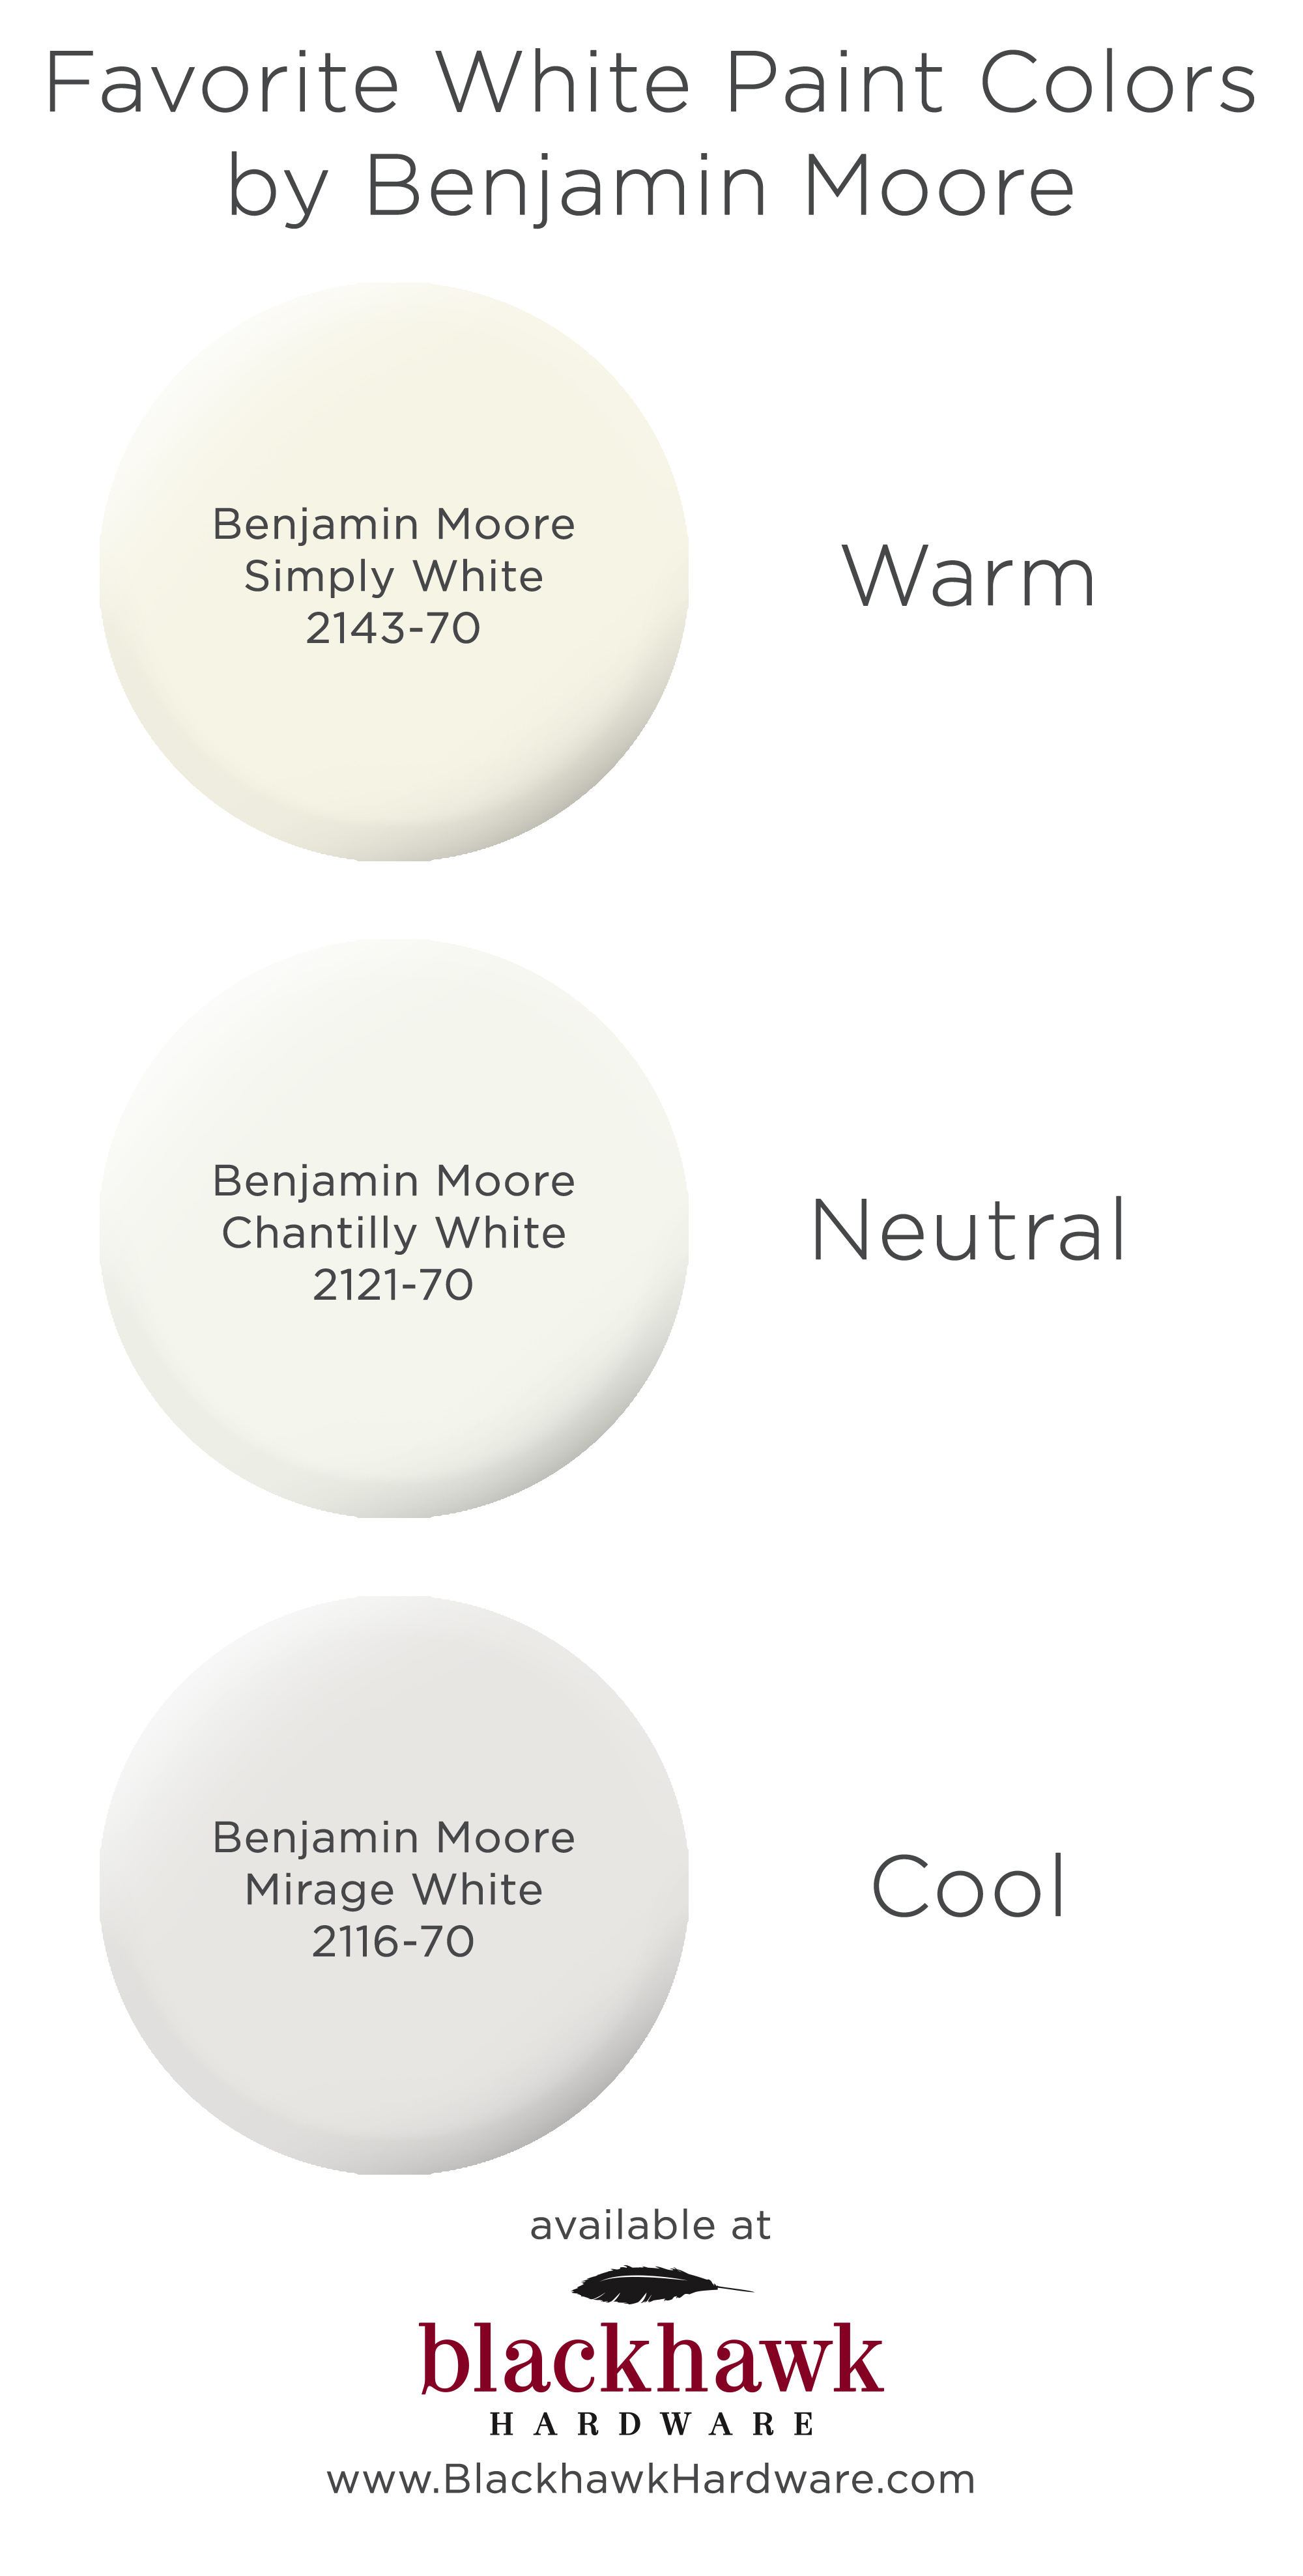 The Best Warm Neutral And Cool White Paint Colors By Benjamin Moore